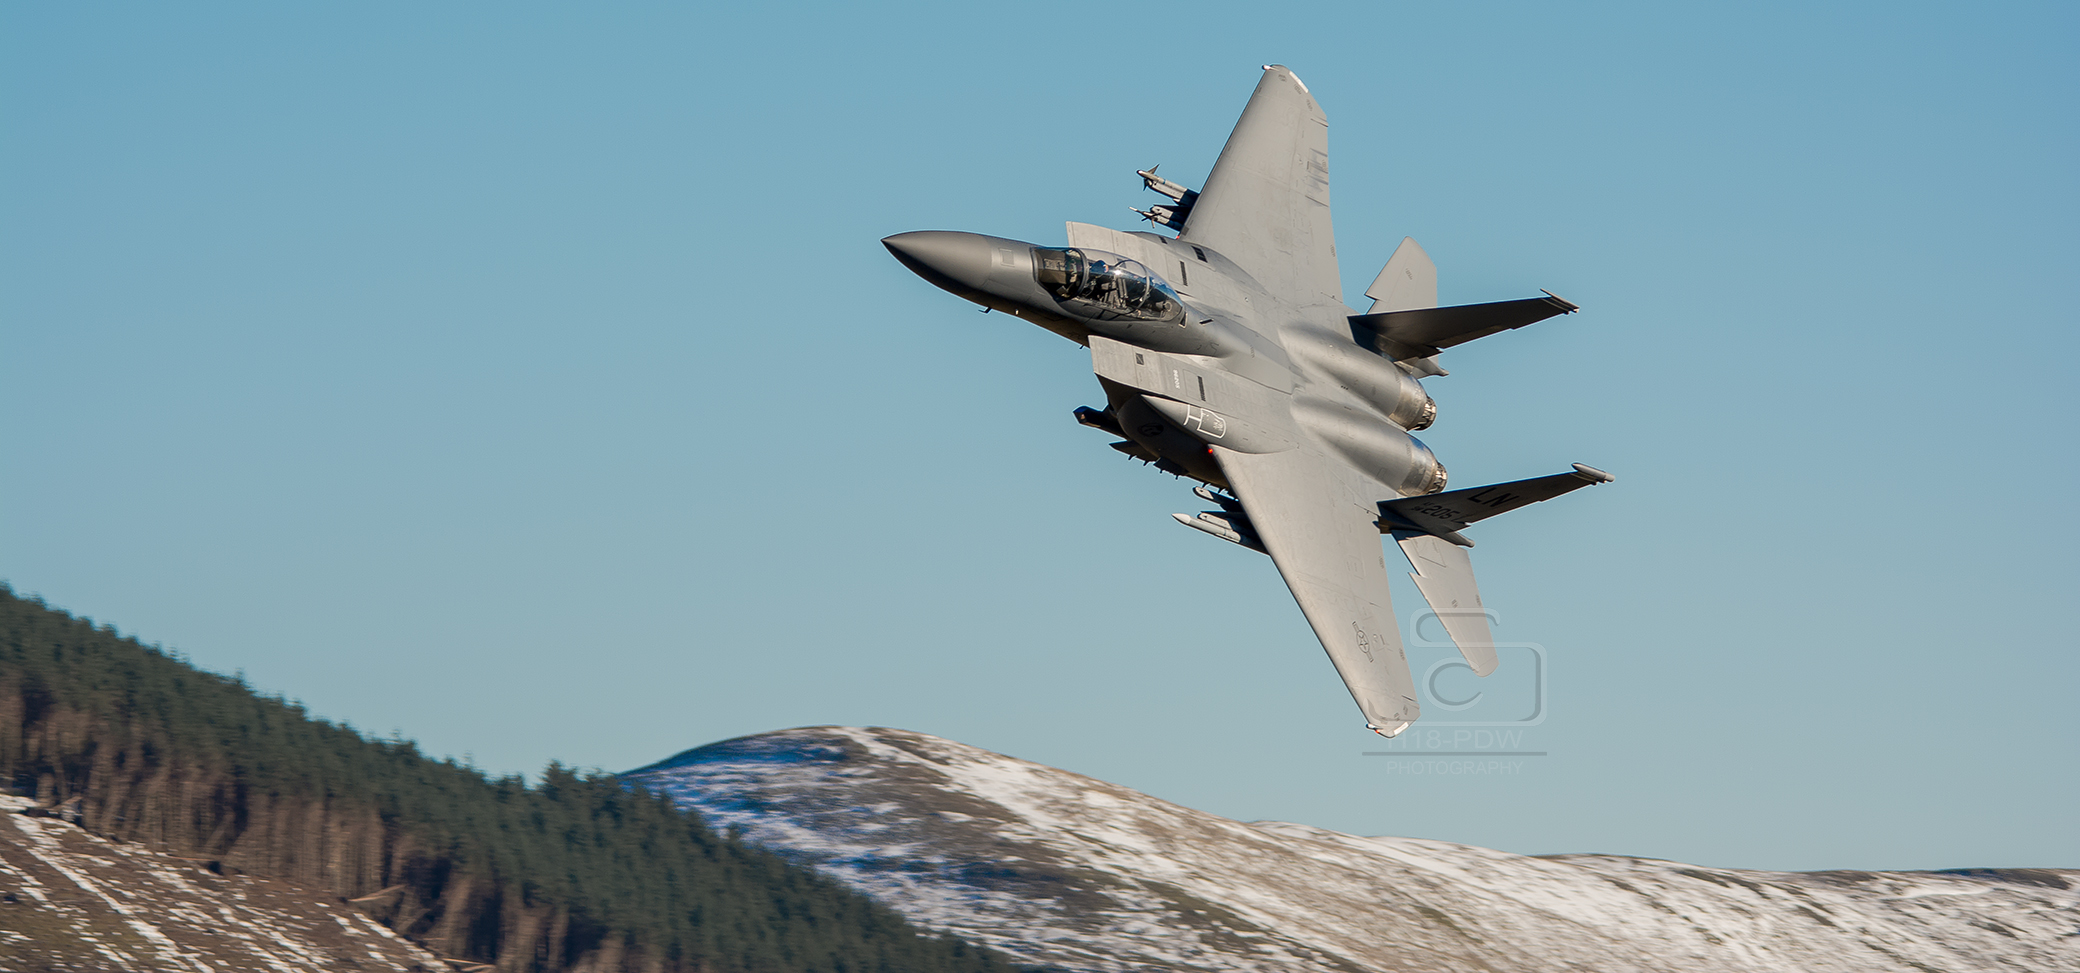 F15 In The Mach Loop